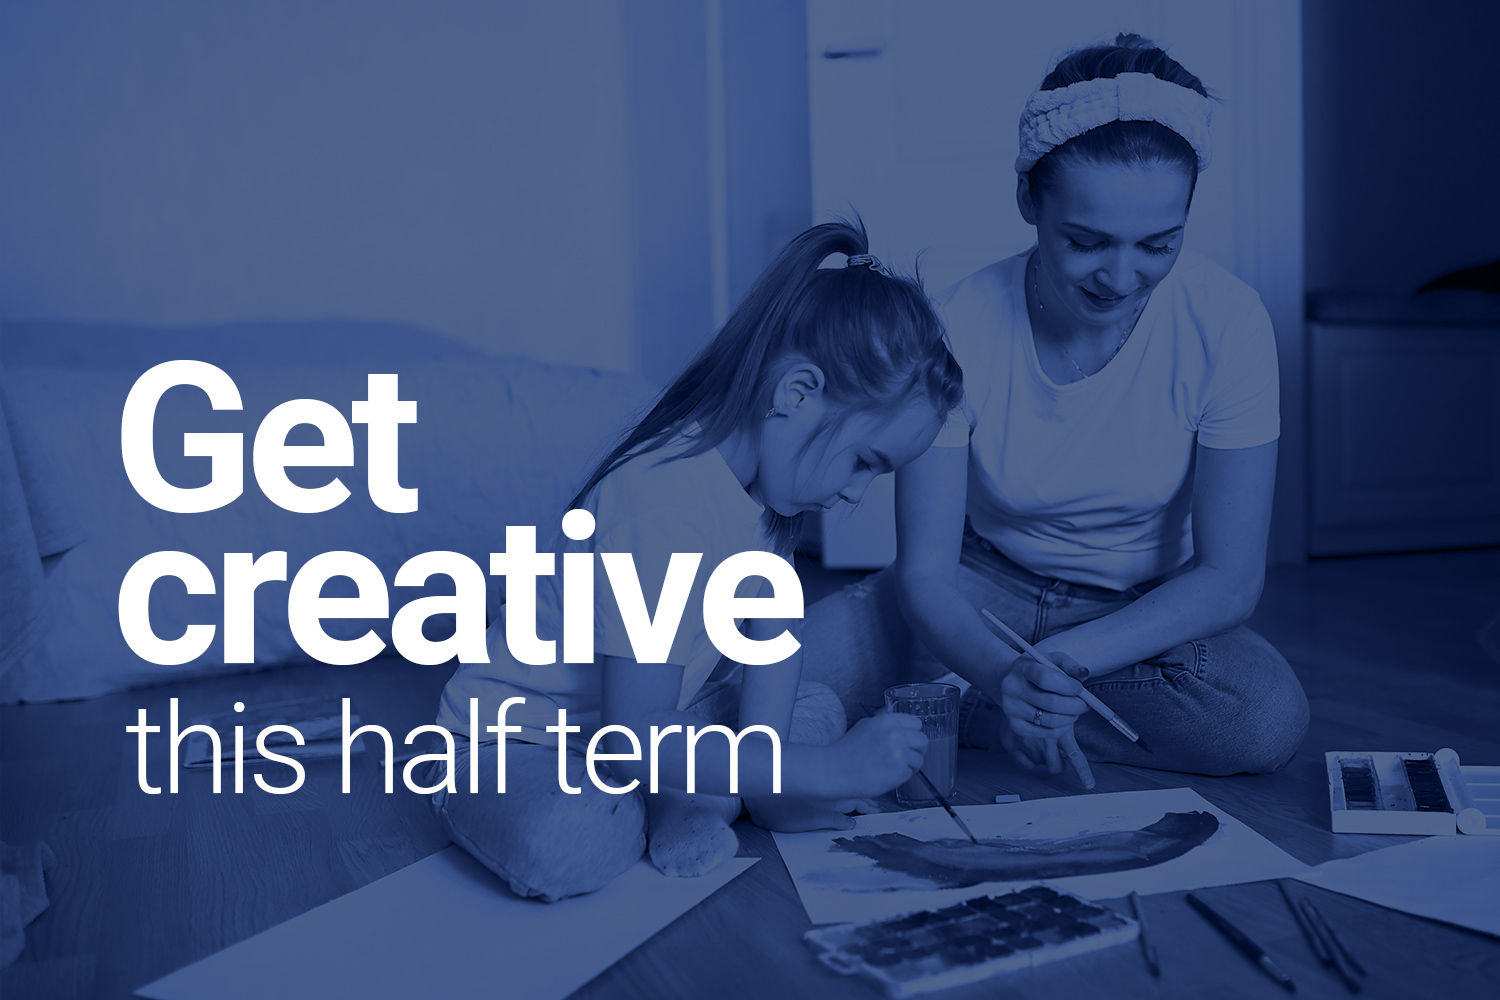 Half-term activities to do at home